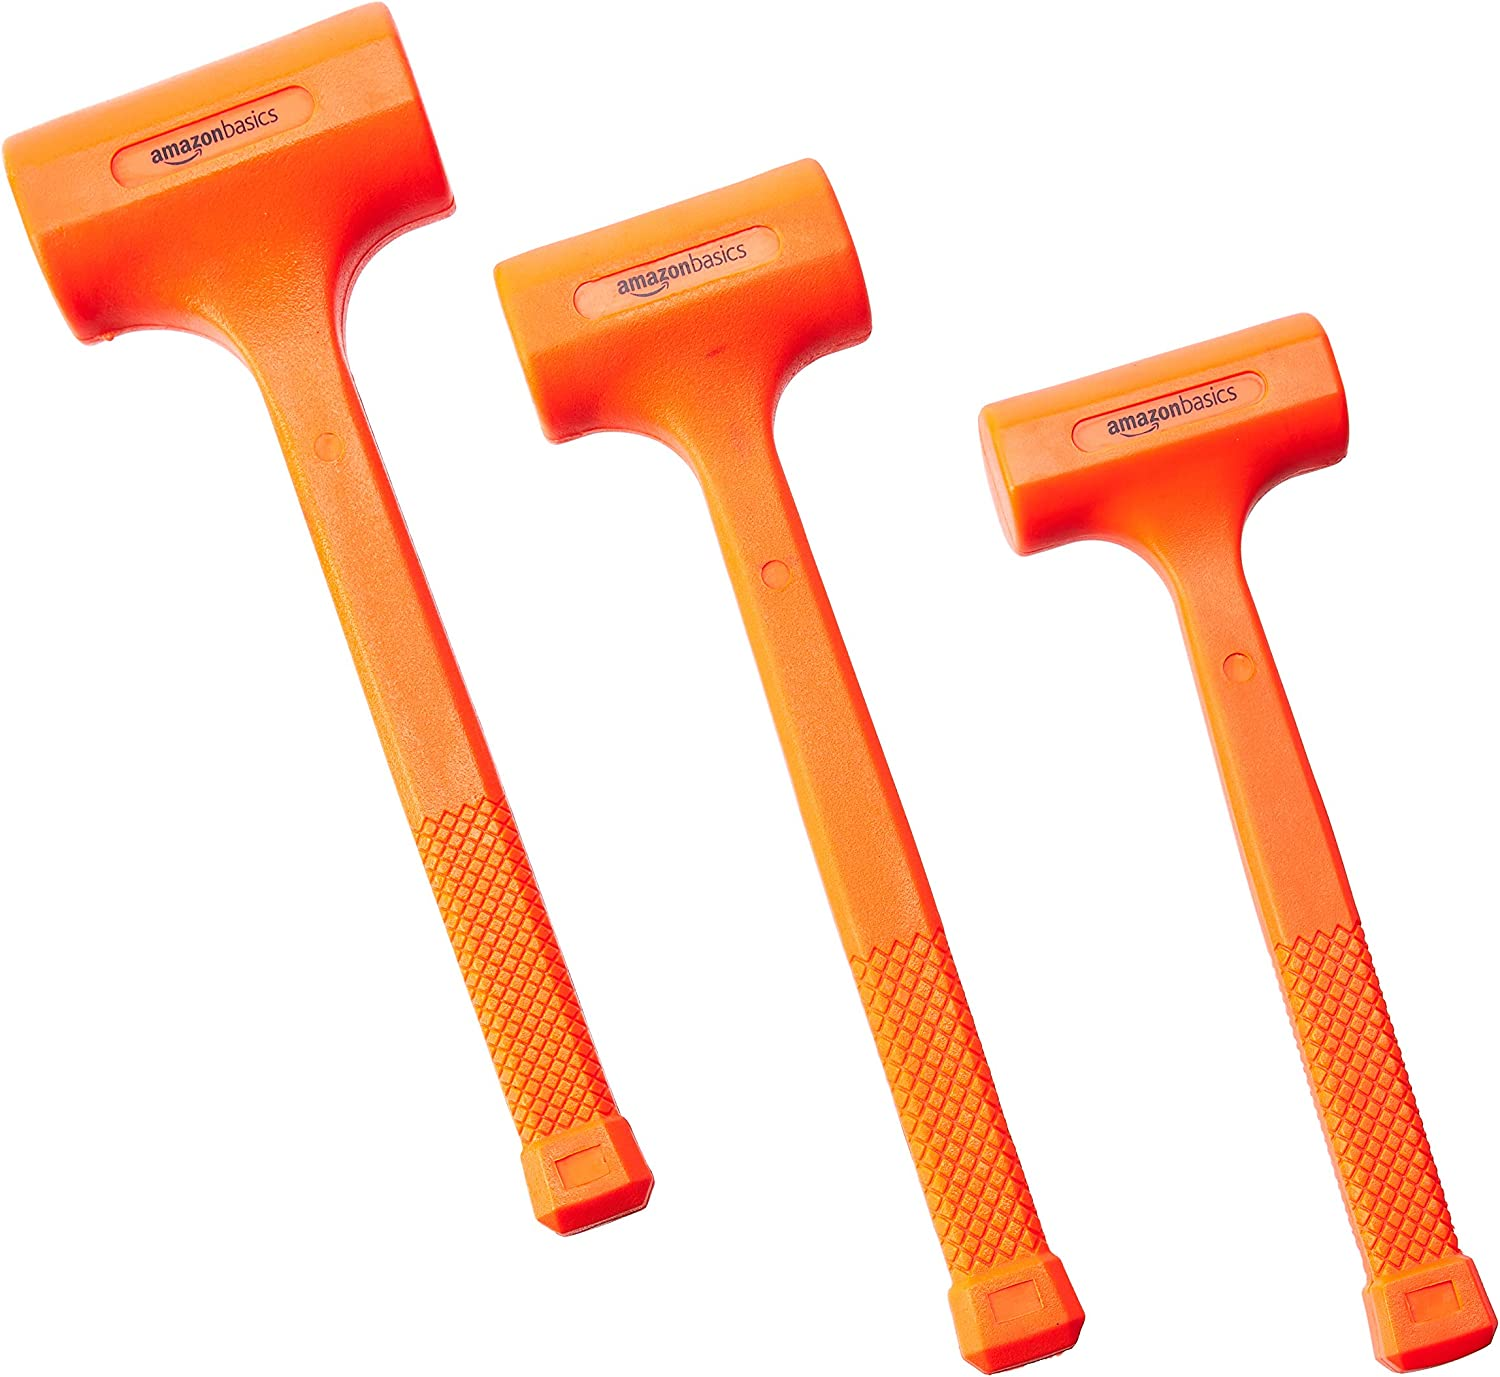 Amazonbasics Dead Blow Hammer Set 3 Piece 1 35 2 And 3 Lbs Amazon Com A dead blow hammer is a specialized mallet helpful in minimizing damage to the struck surface and in controlling striking force, with minimal rebound from the struck surface. amazonbasics dead blow hammer set 3 piece 1 35 2 and 3 lbs